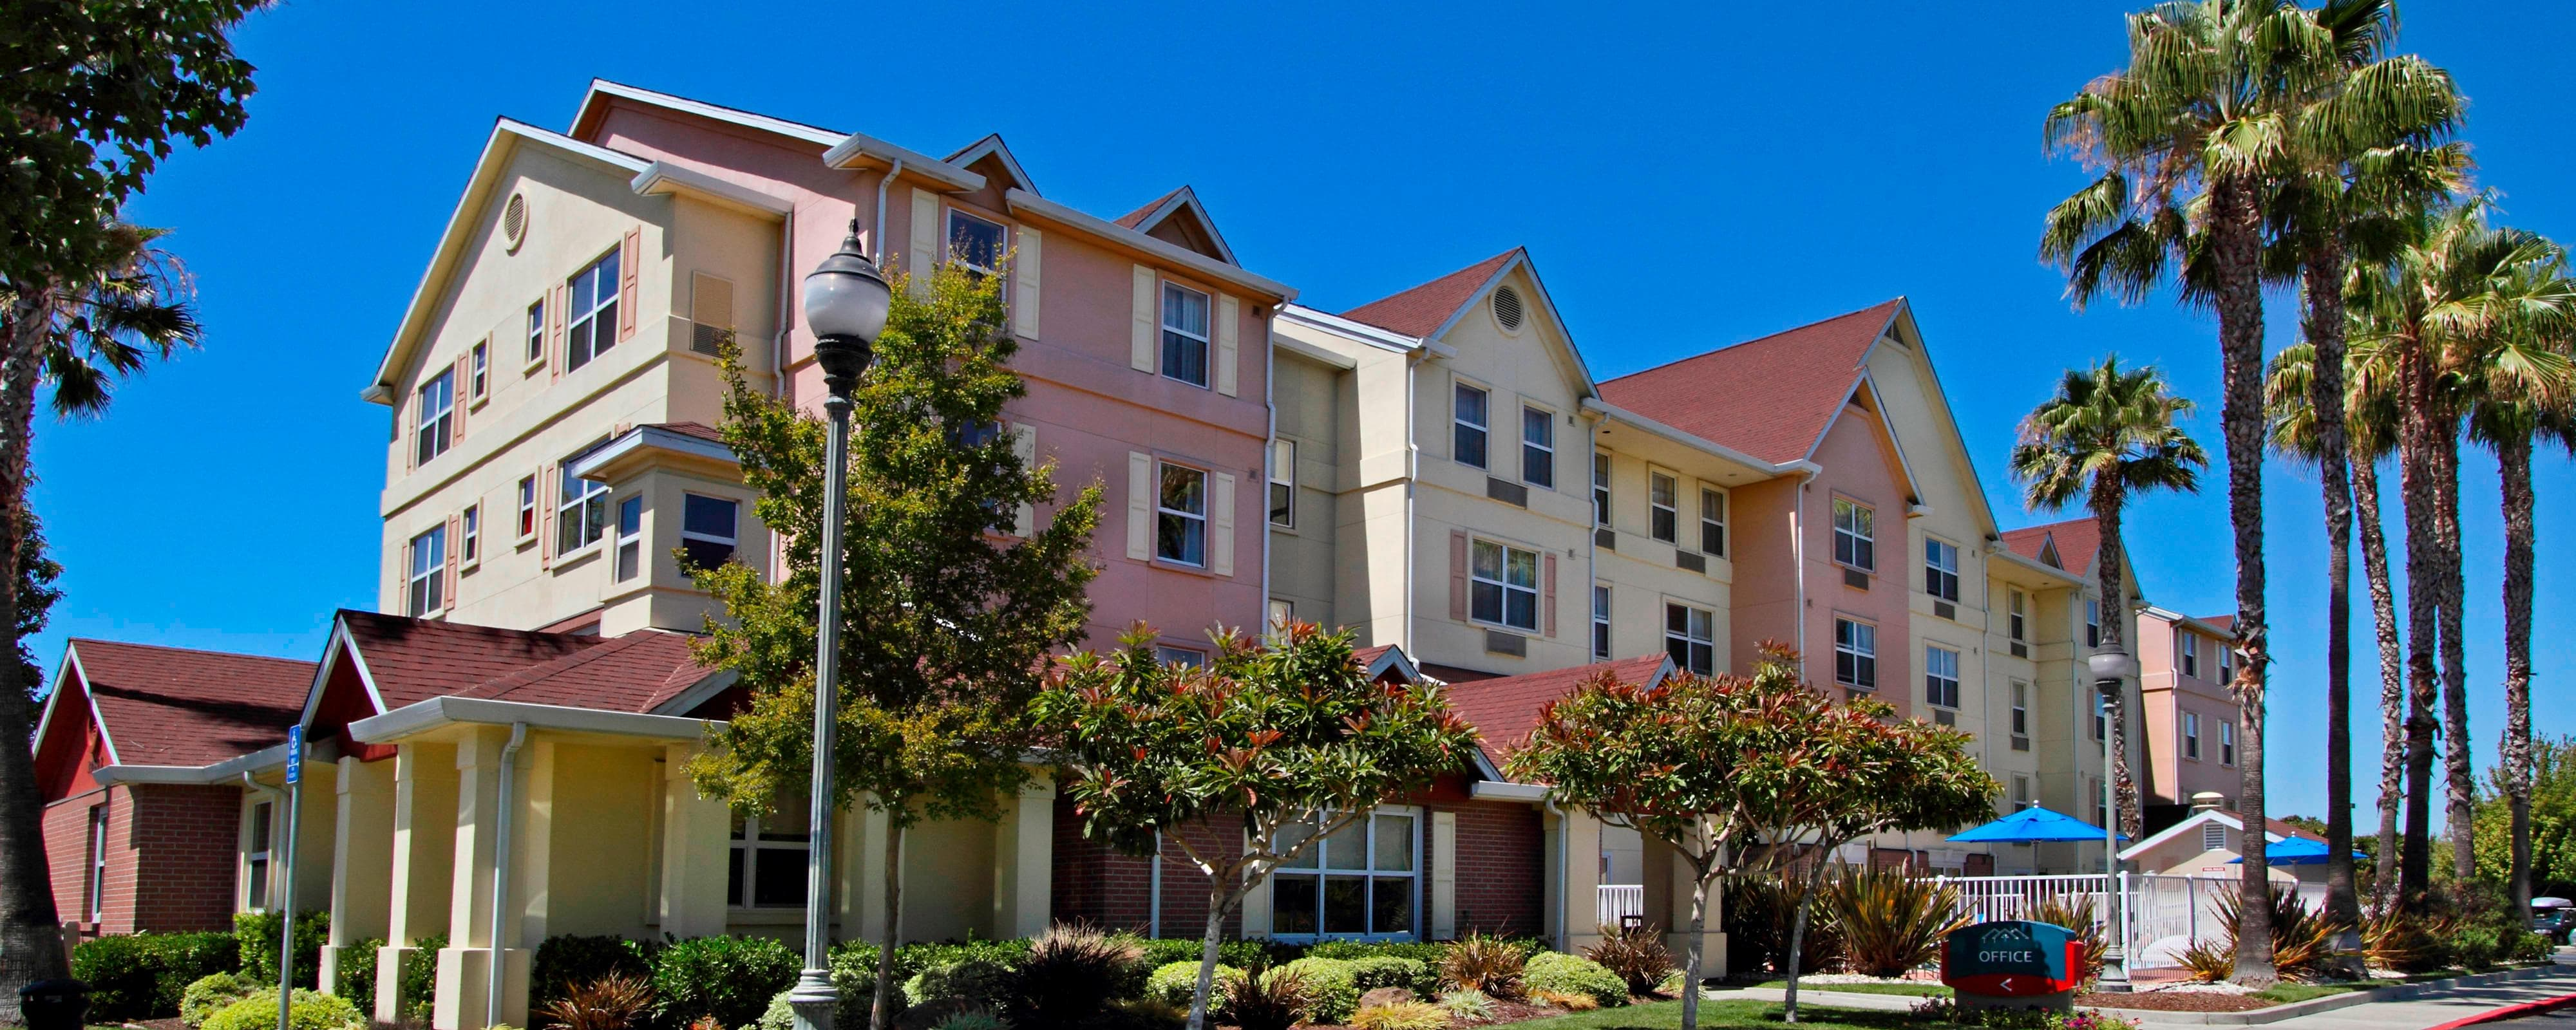 Hotels In Silicon Valley Towneplace Suites Newark Ca Hotel